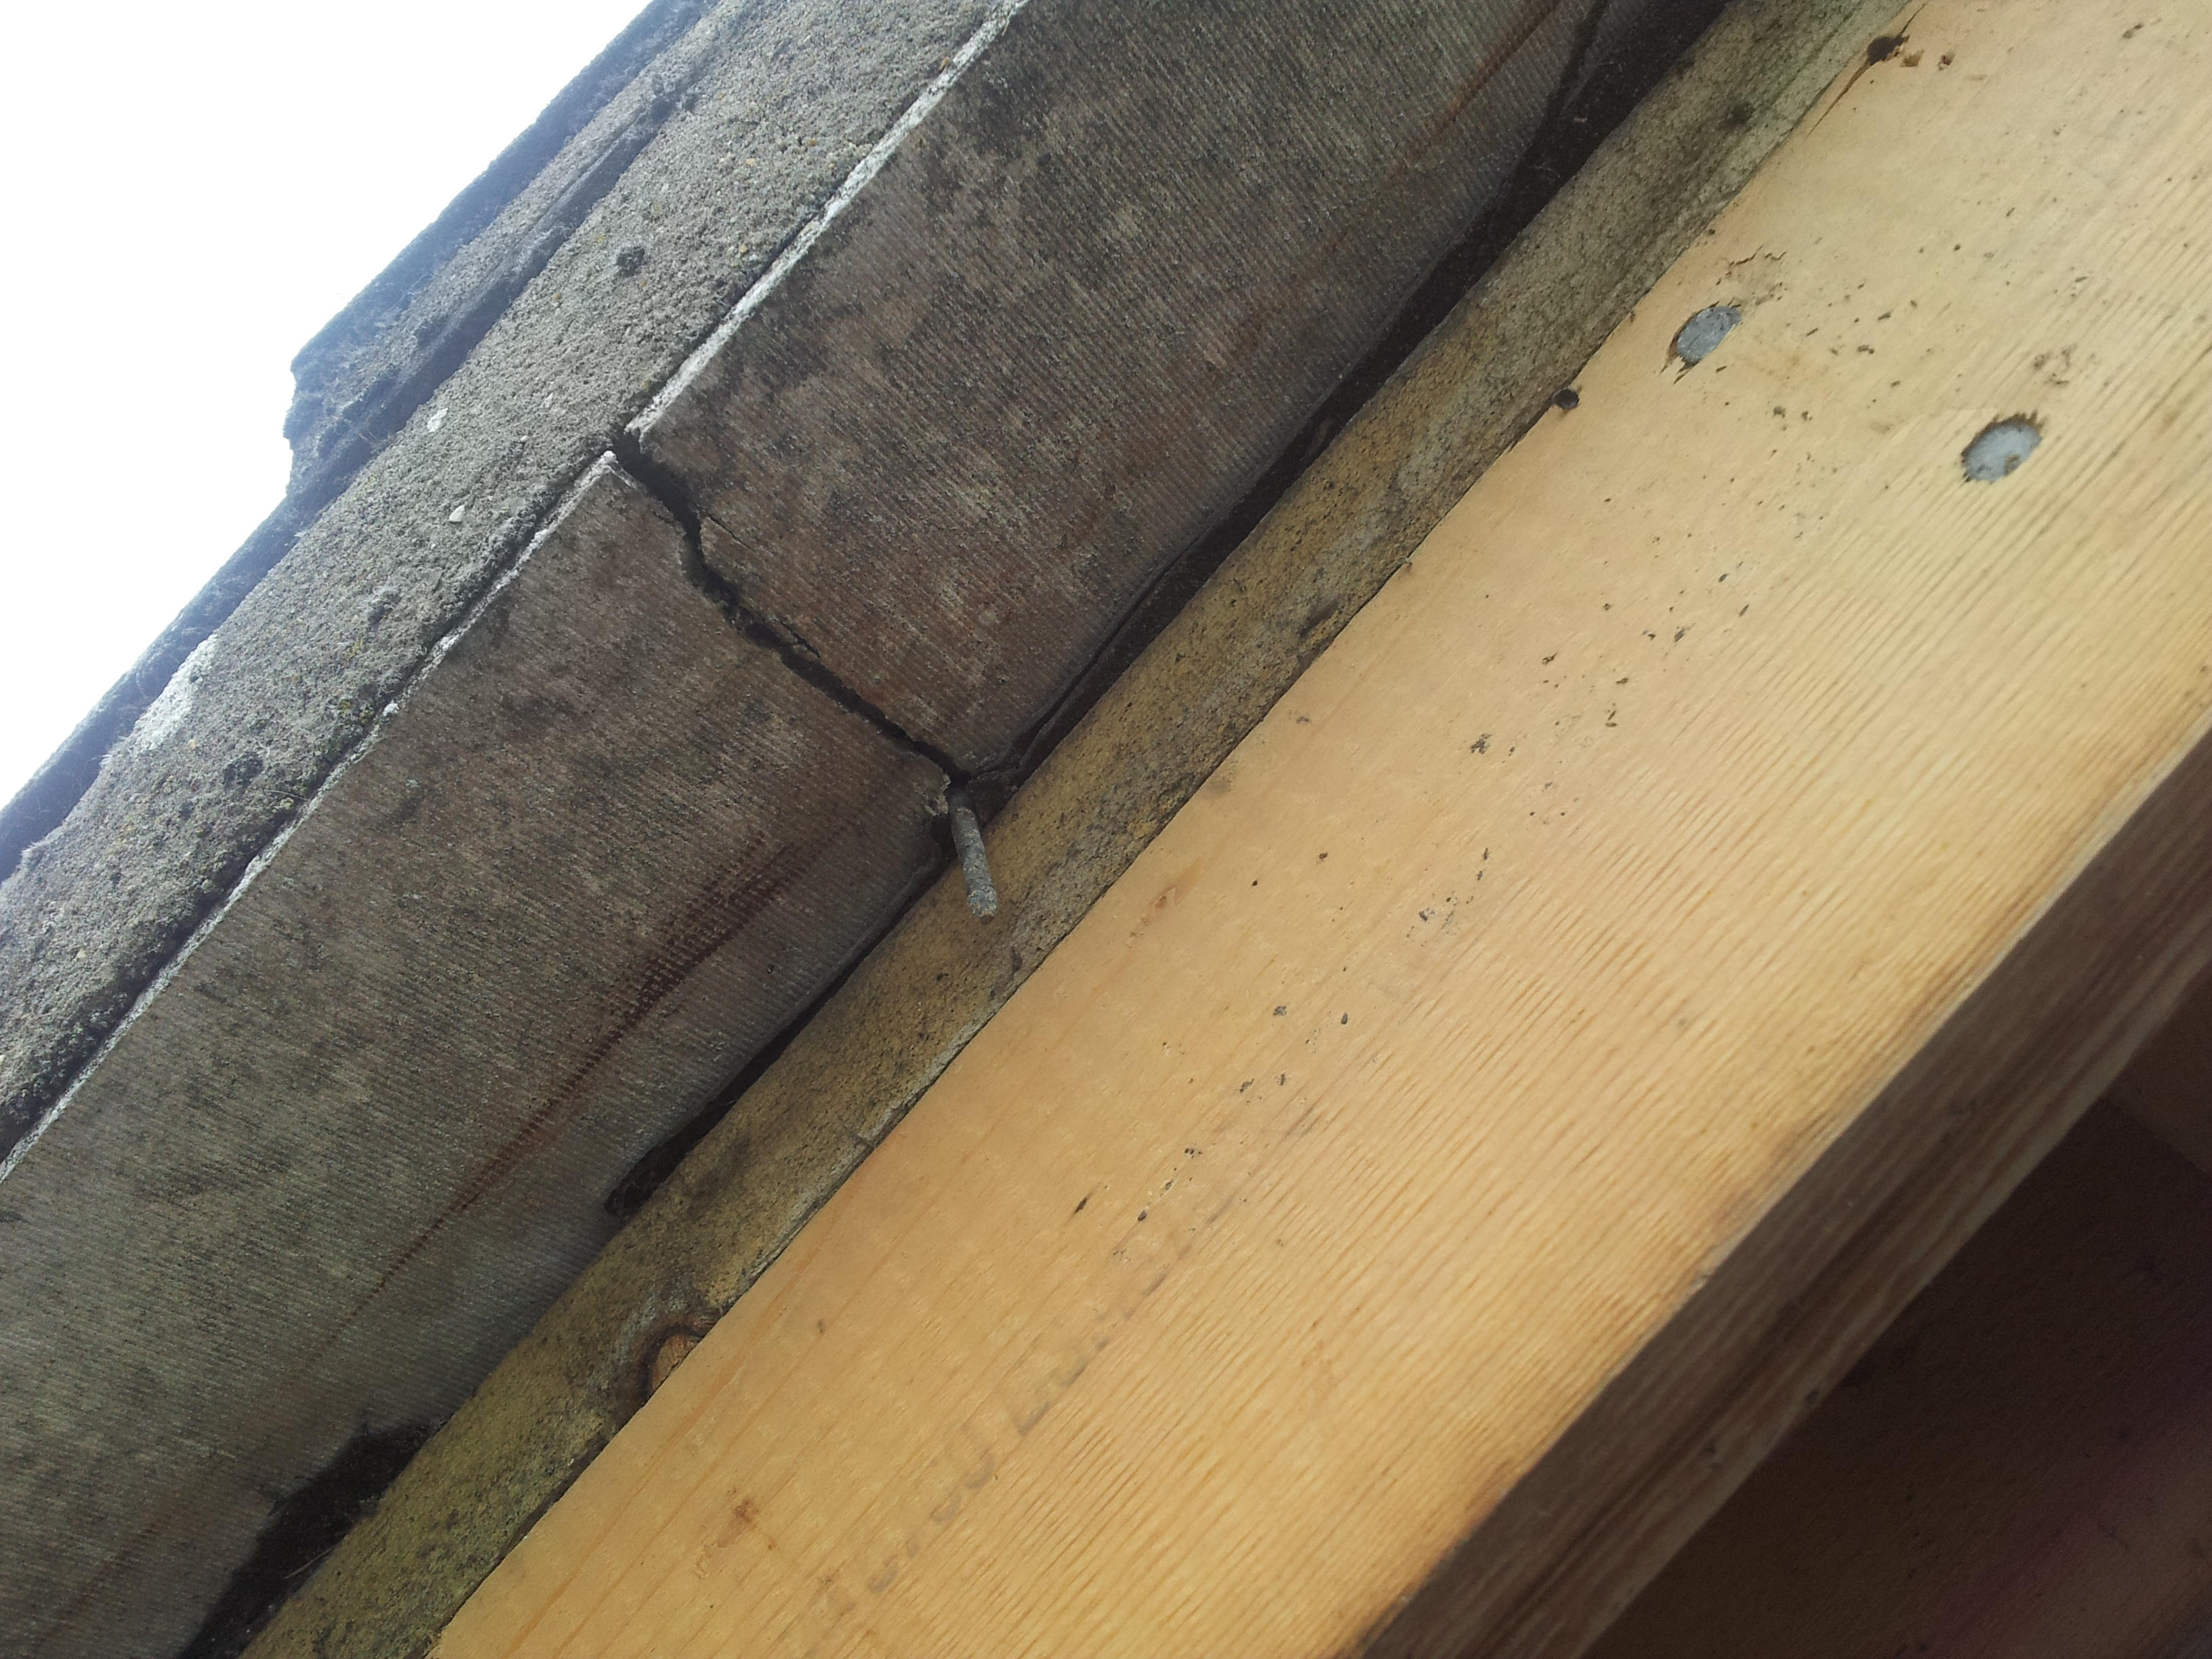 Rafter exposed ready for fixing